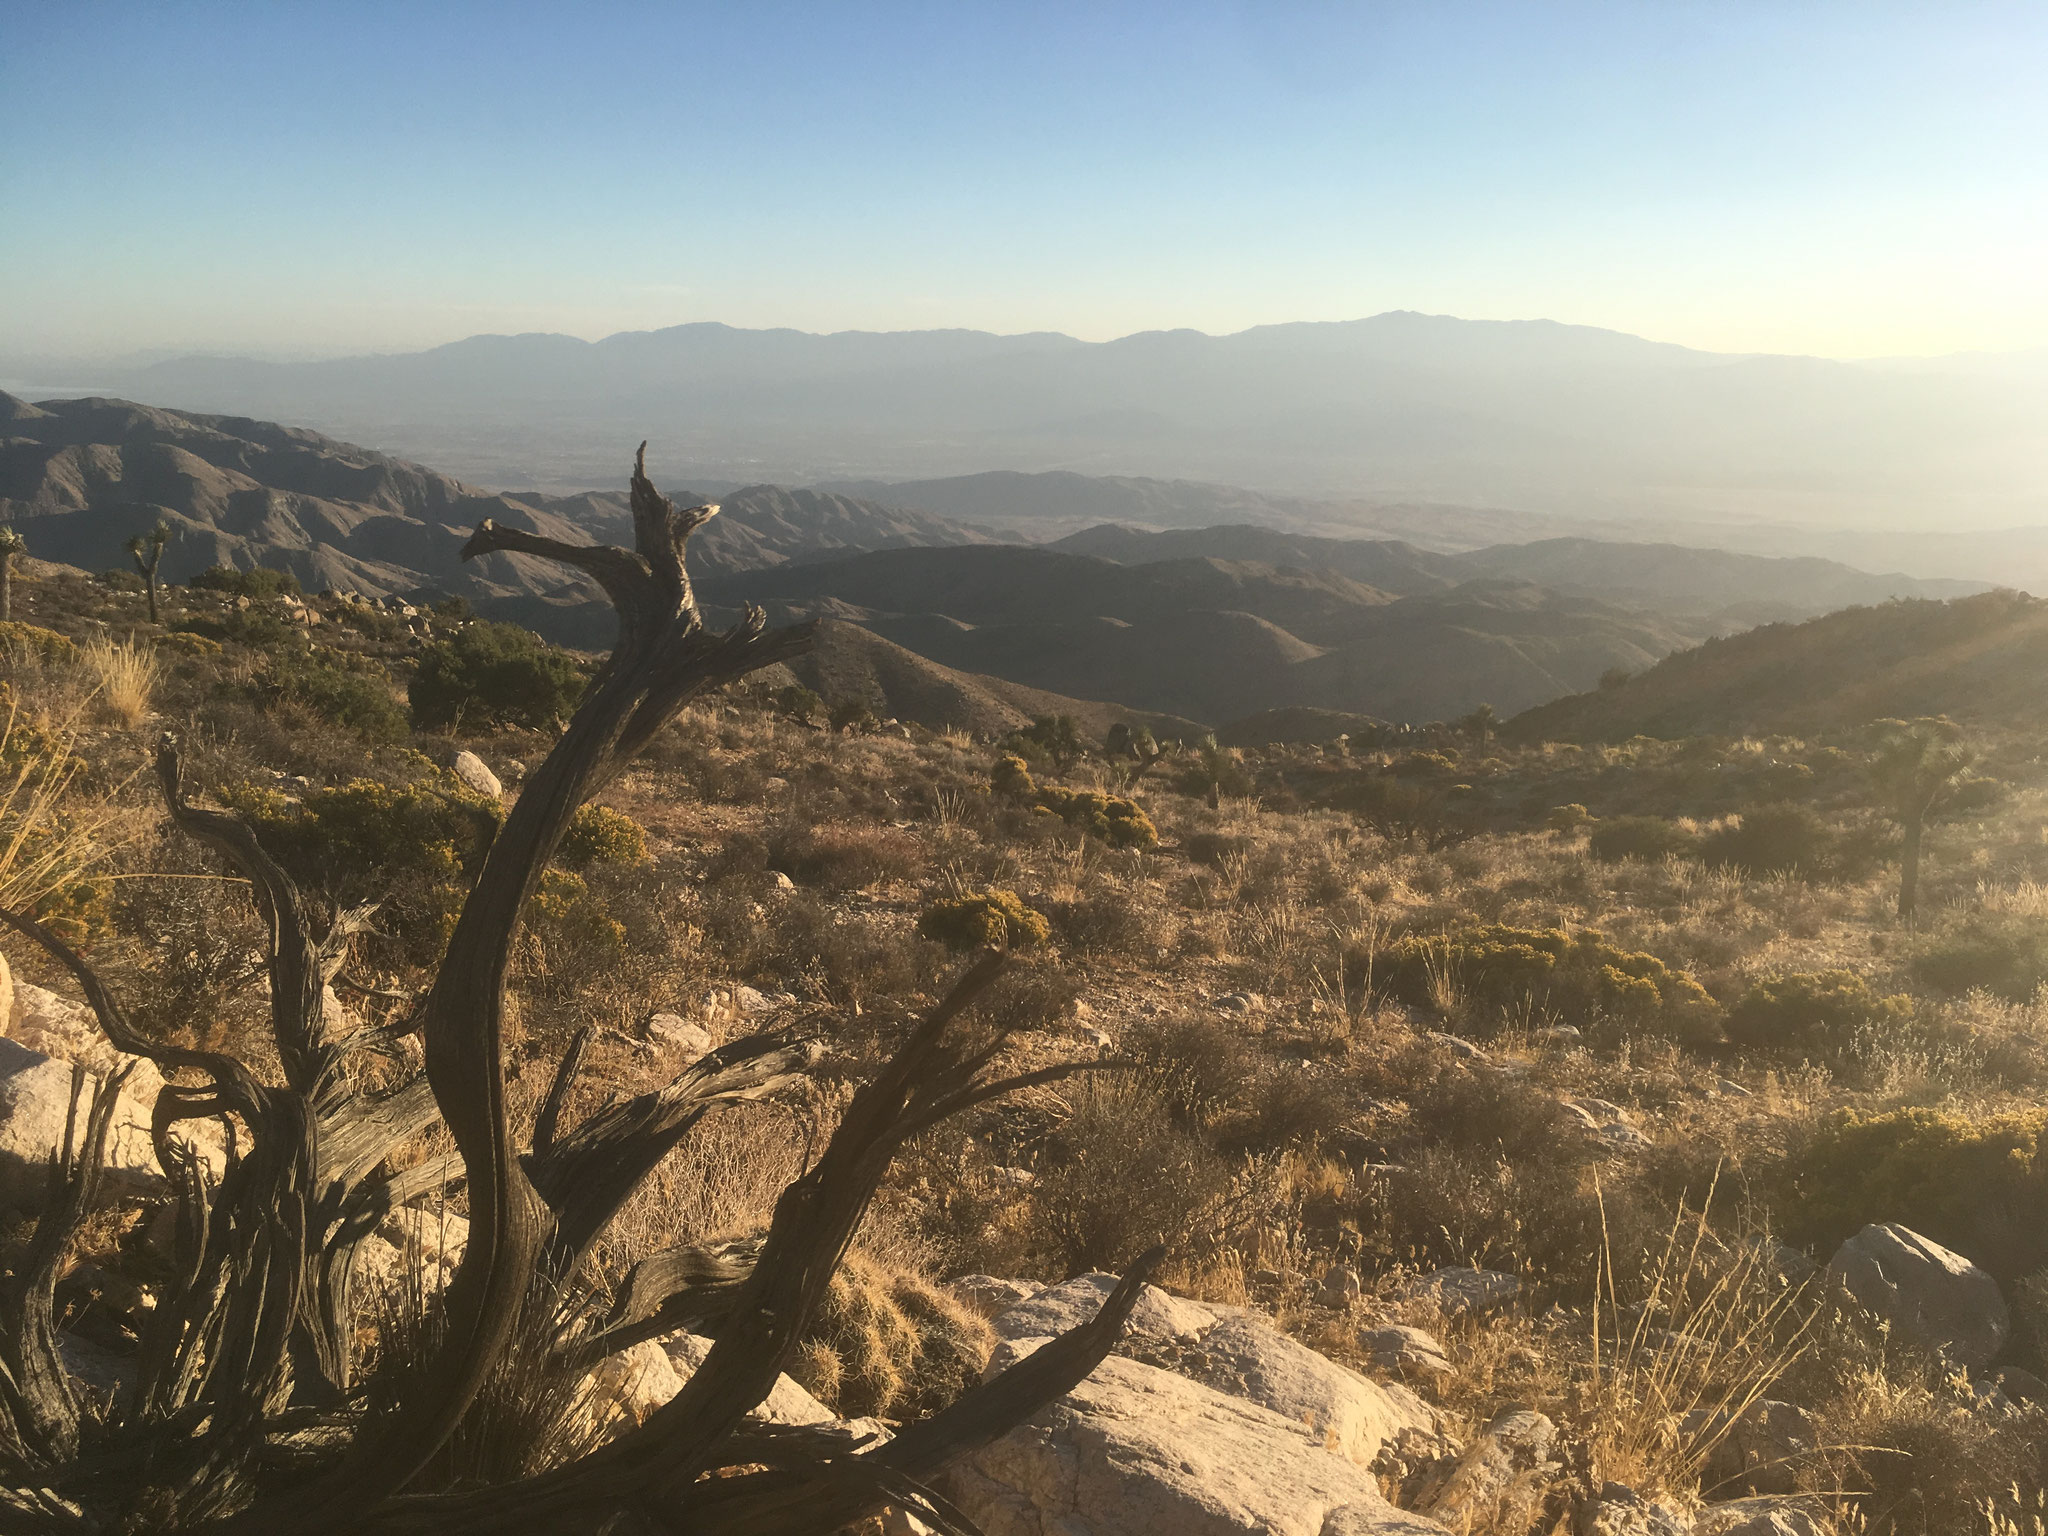 Joshua Tree National Park (faille de San Andrea & Coachella Valley)